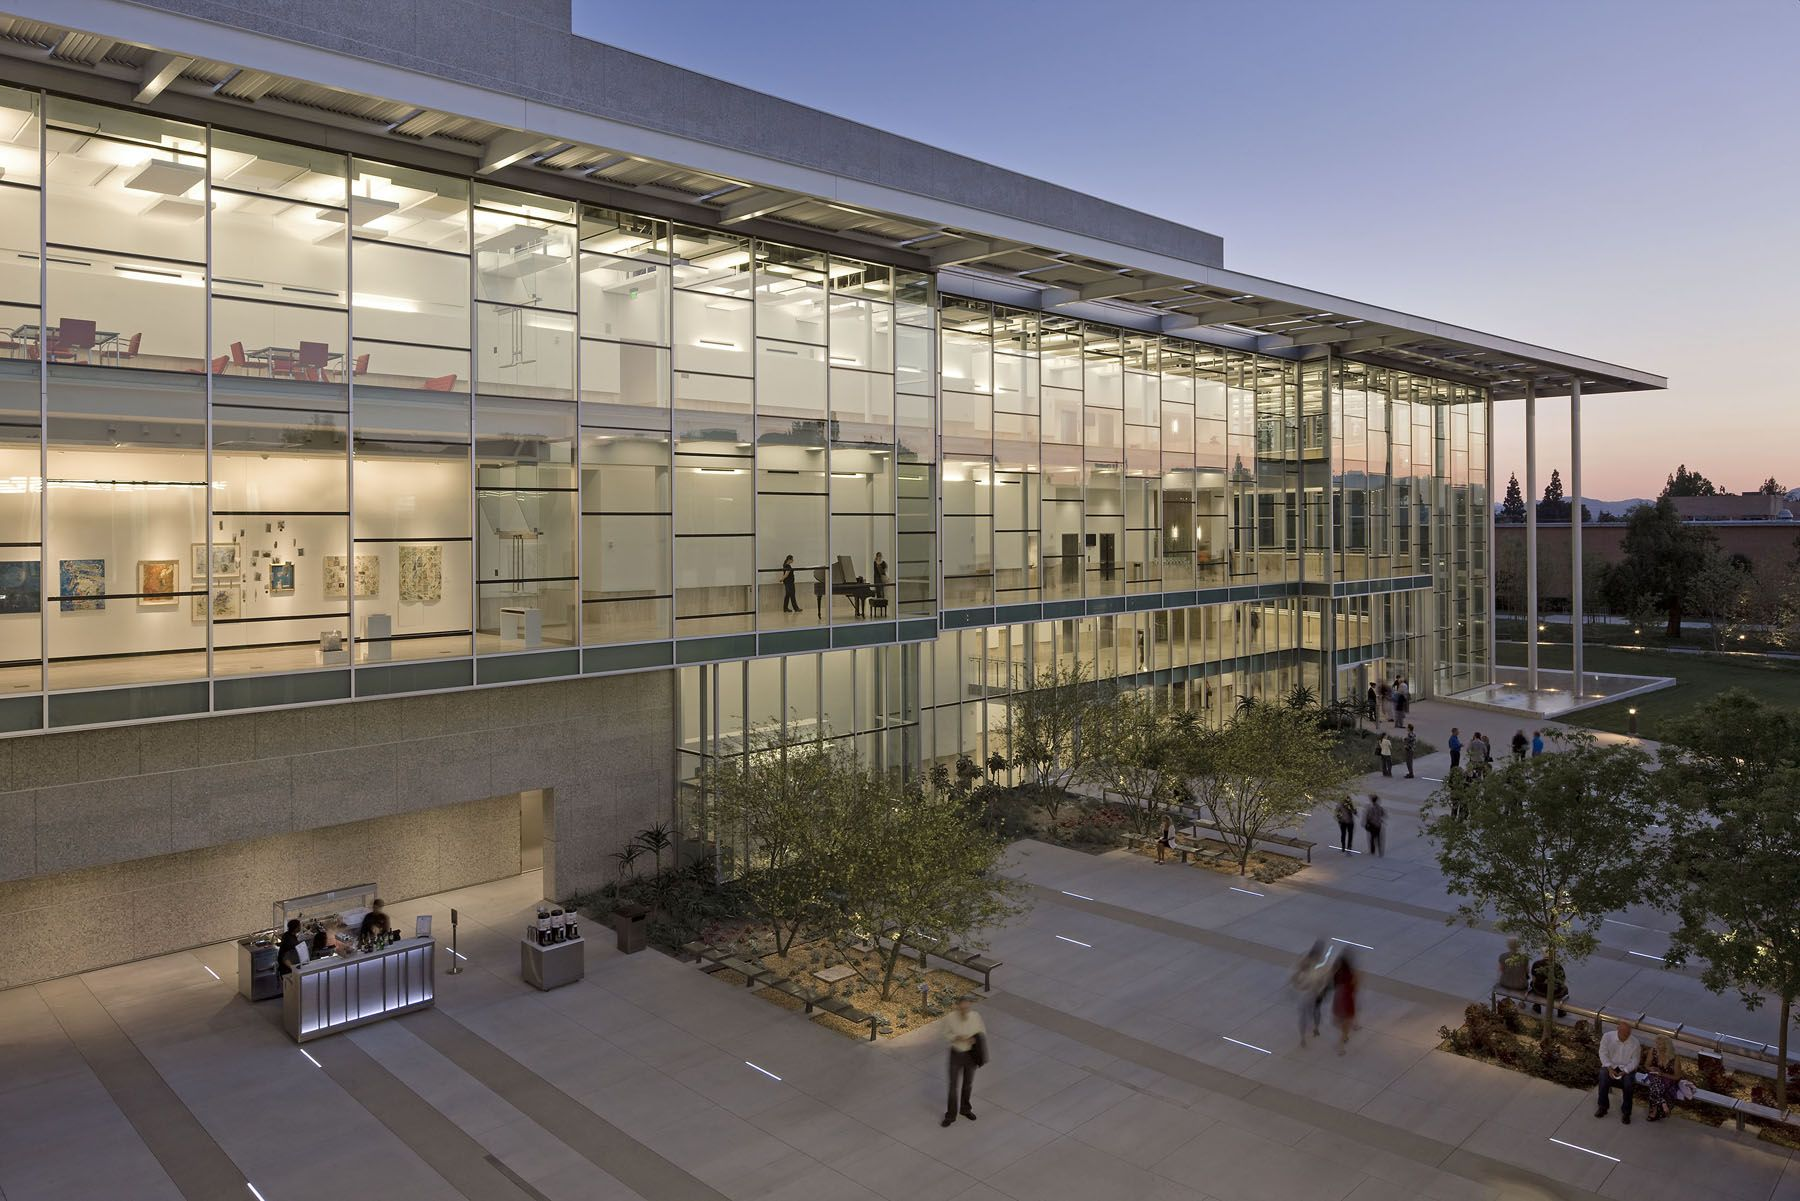 Valley Performing Arts Center Courtyard Architecture California